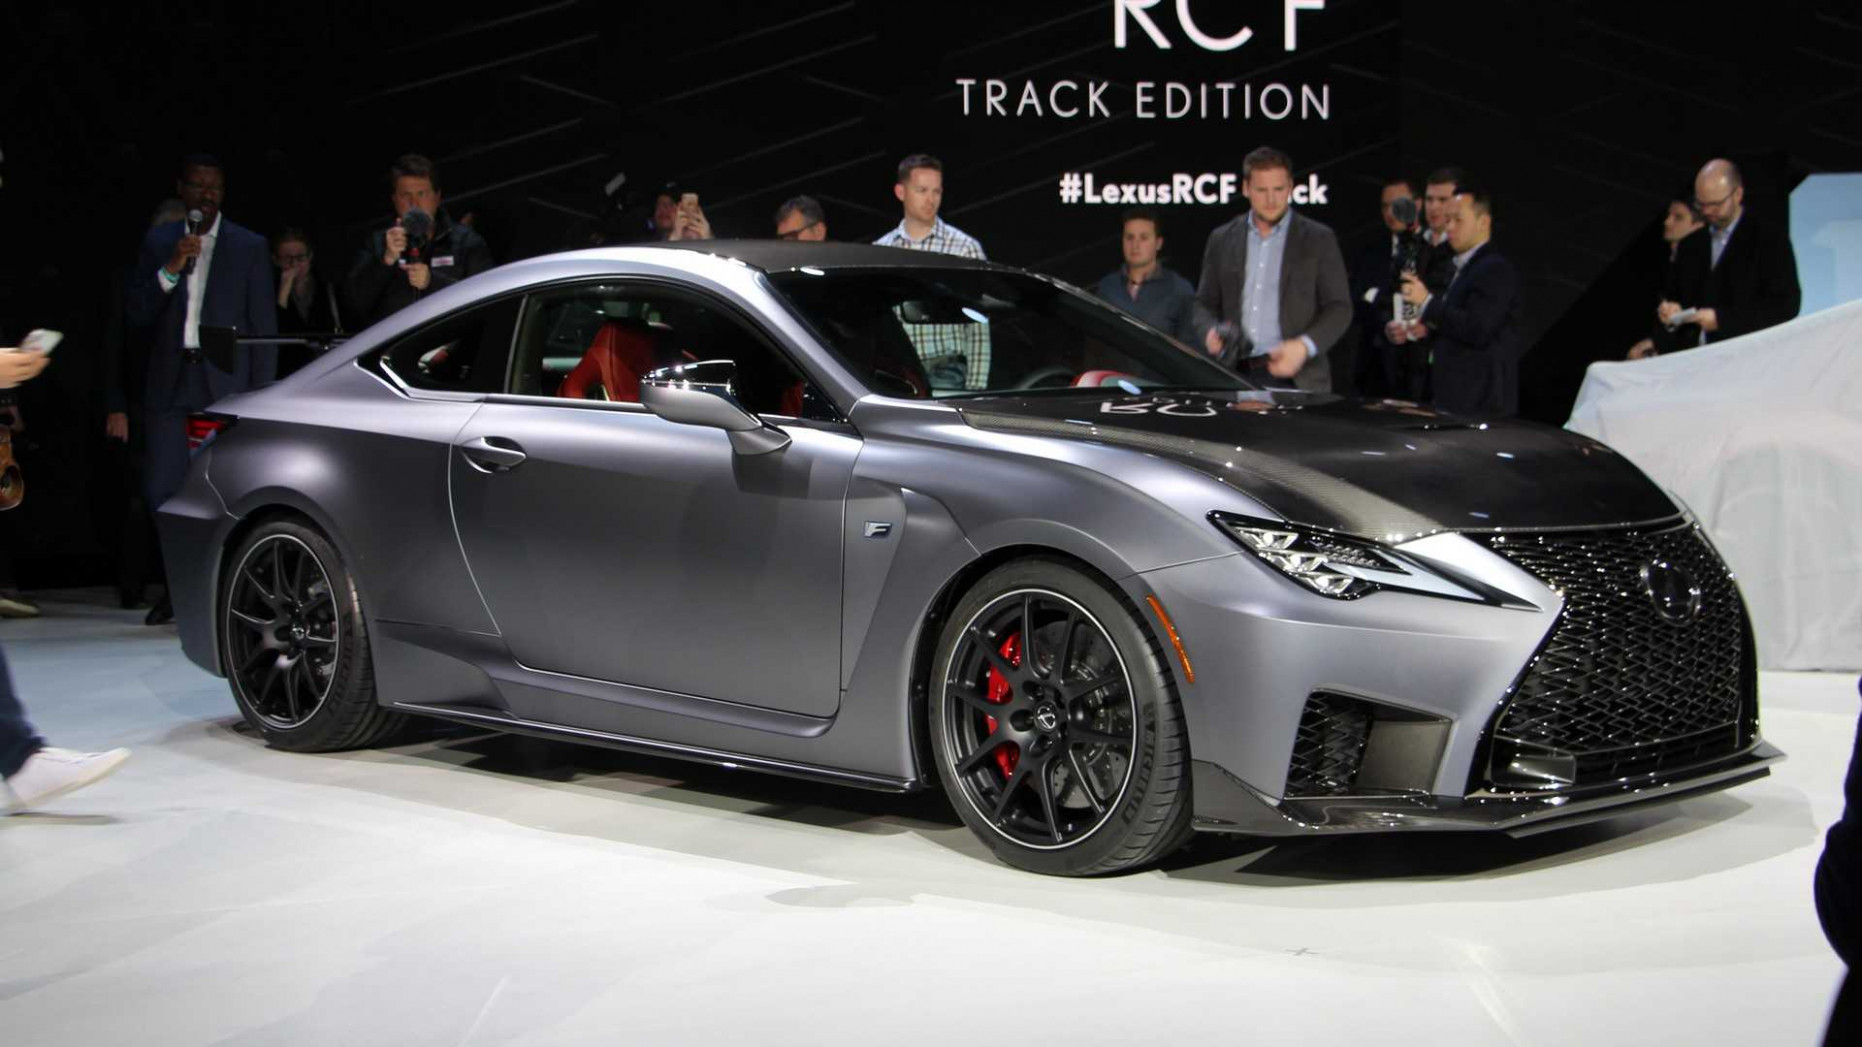 8 Lexus RC F Track Edition Debuts In Detroit [UPDATE]